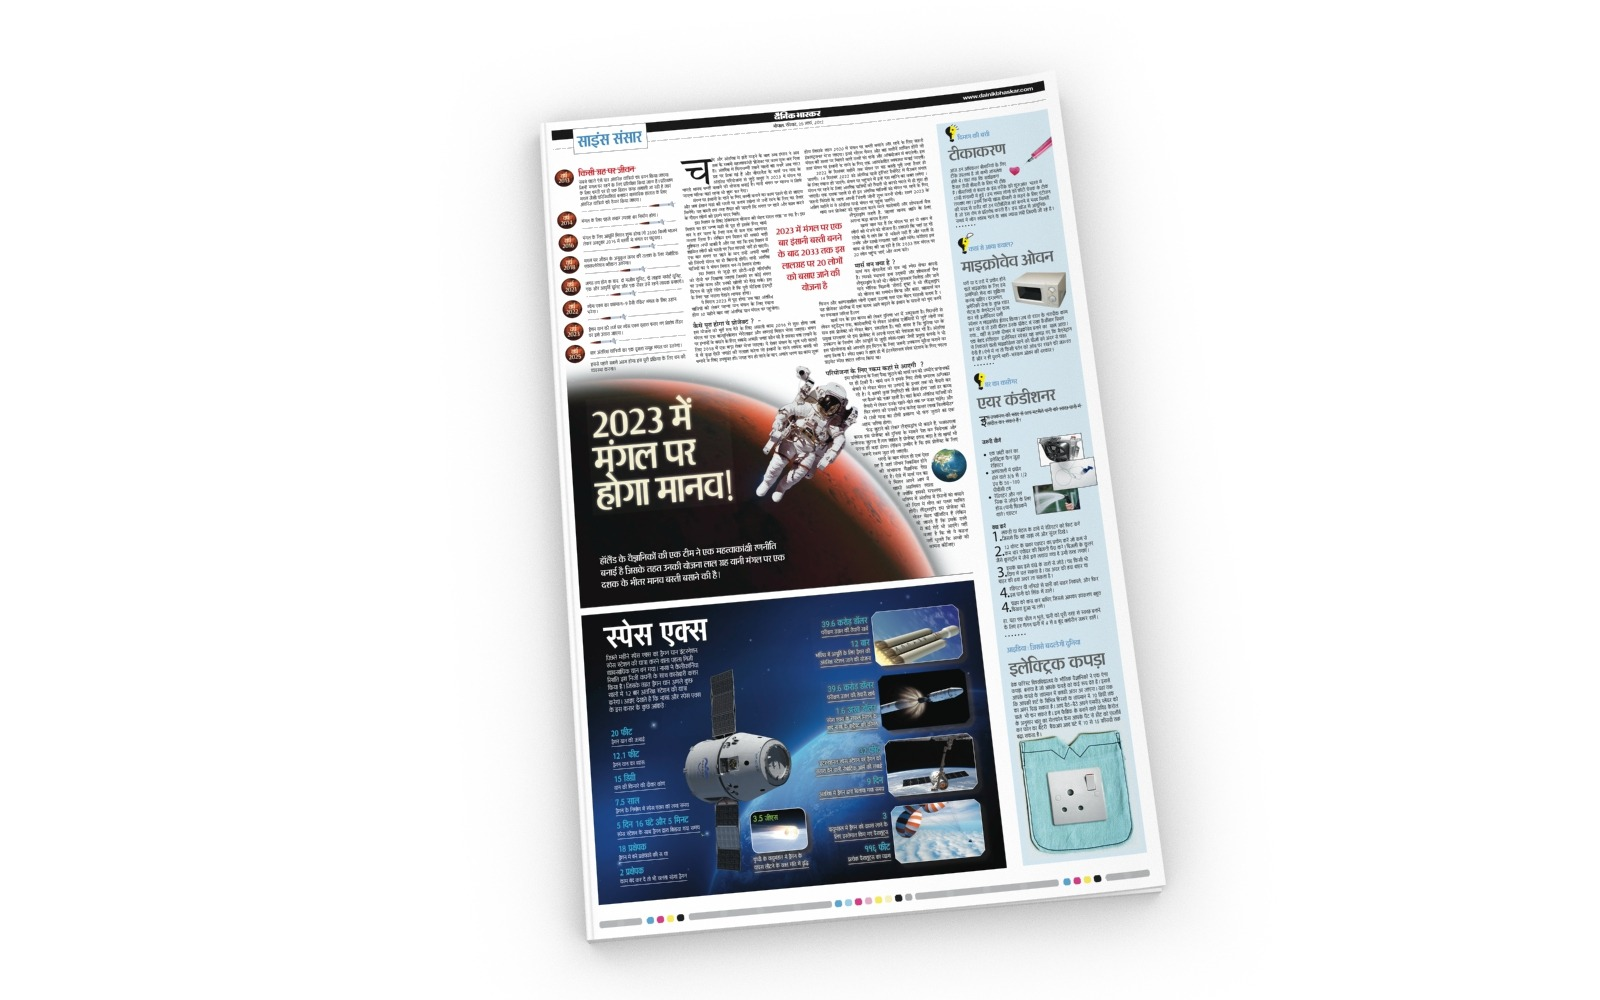 Newspaper weekly magazine page layout for Dainik Bhaskar Group's Rasrang